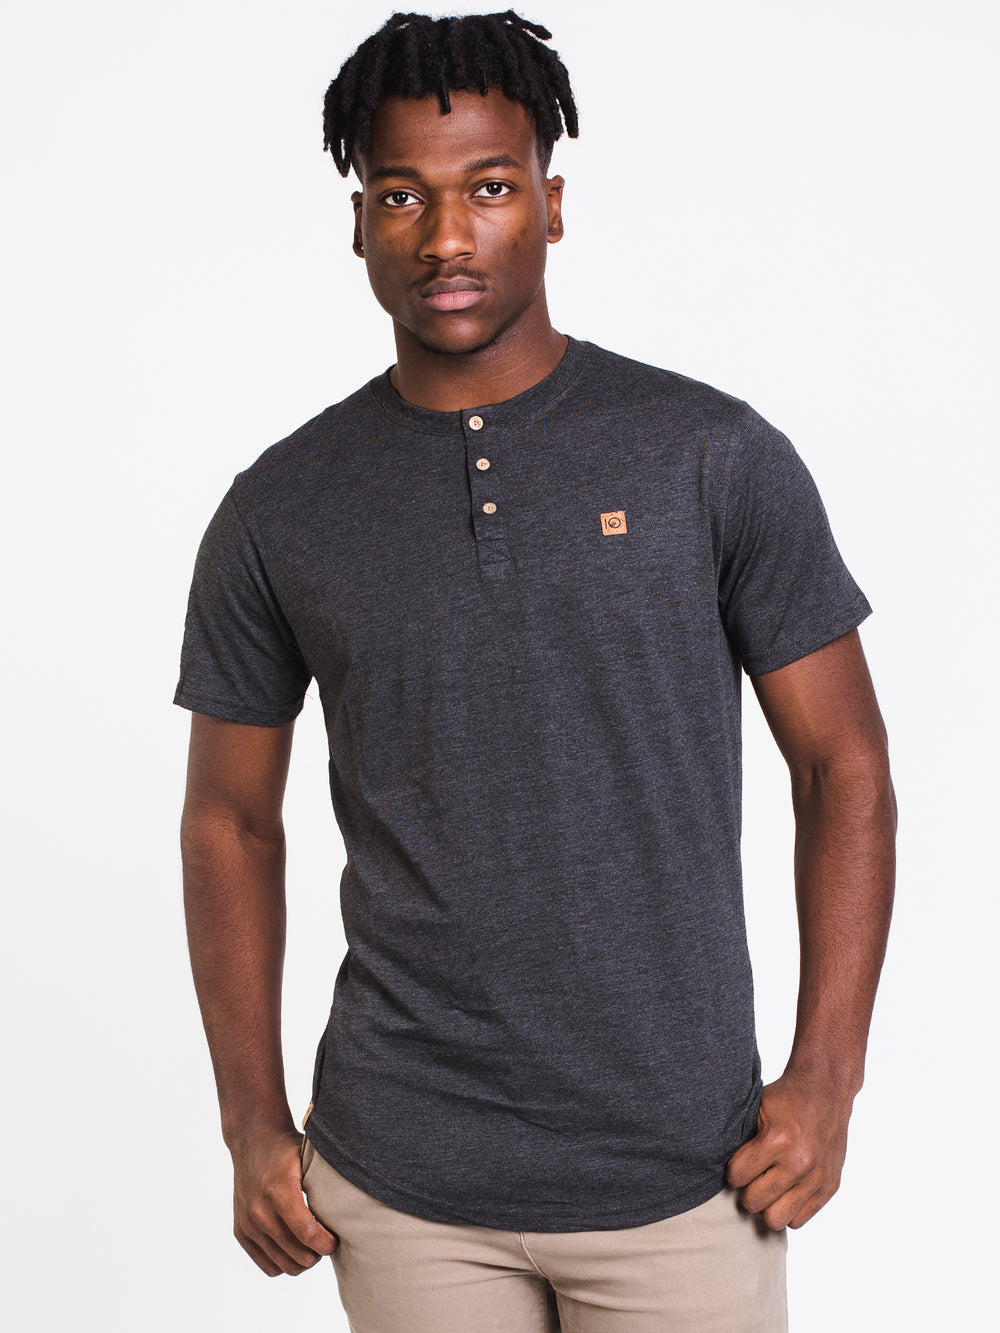 MENS STANDARD SHORT SLEEVE HENLEY - BLACK